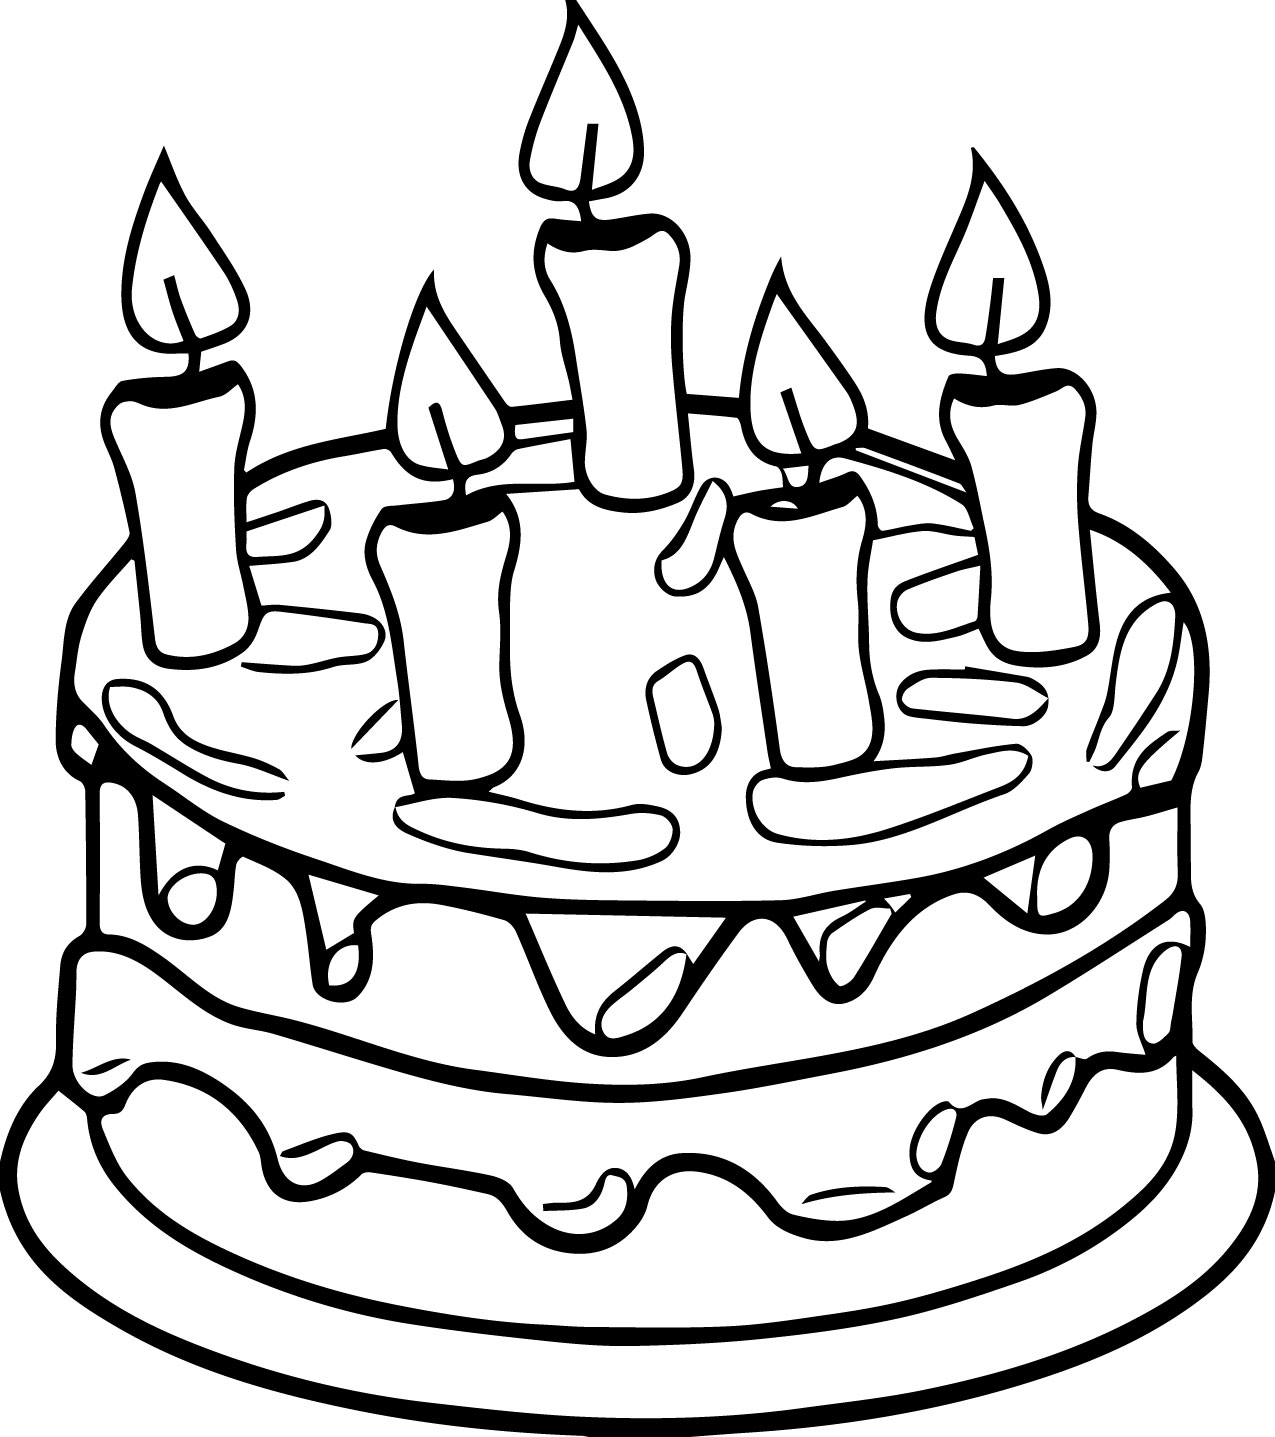 happy birthday coloring sheets happy birthday coloring pages to download and print for free coloring happy birthday sheets